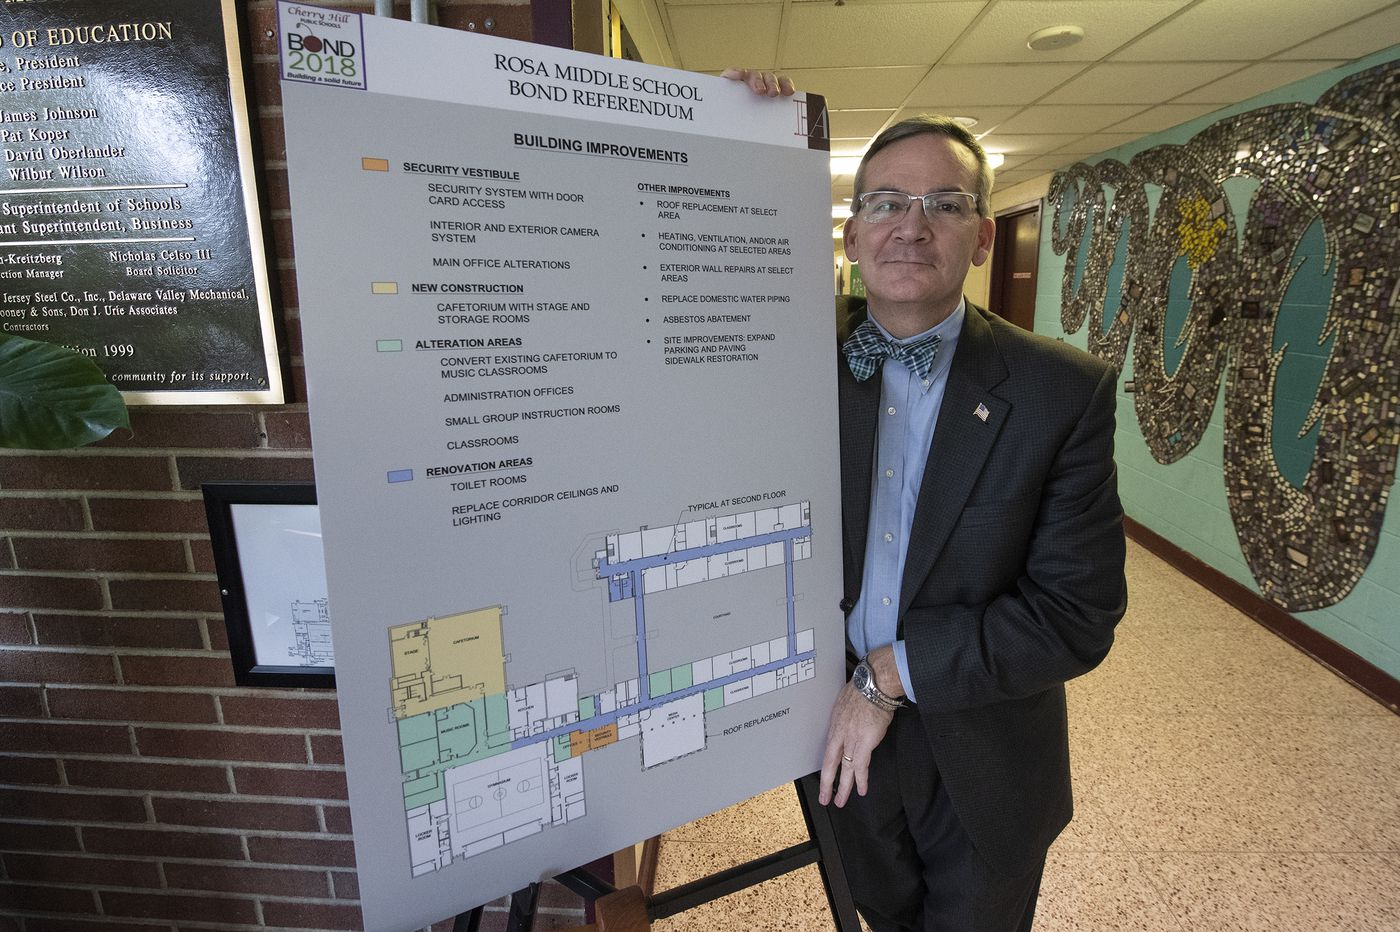 Voters appear to reject $210.7 million plan to improve Cherry Hill schools